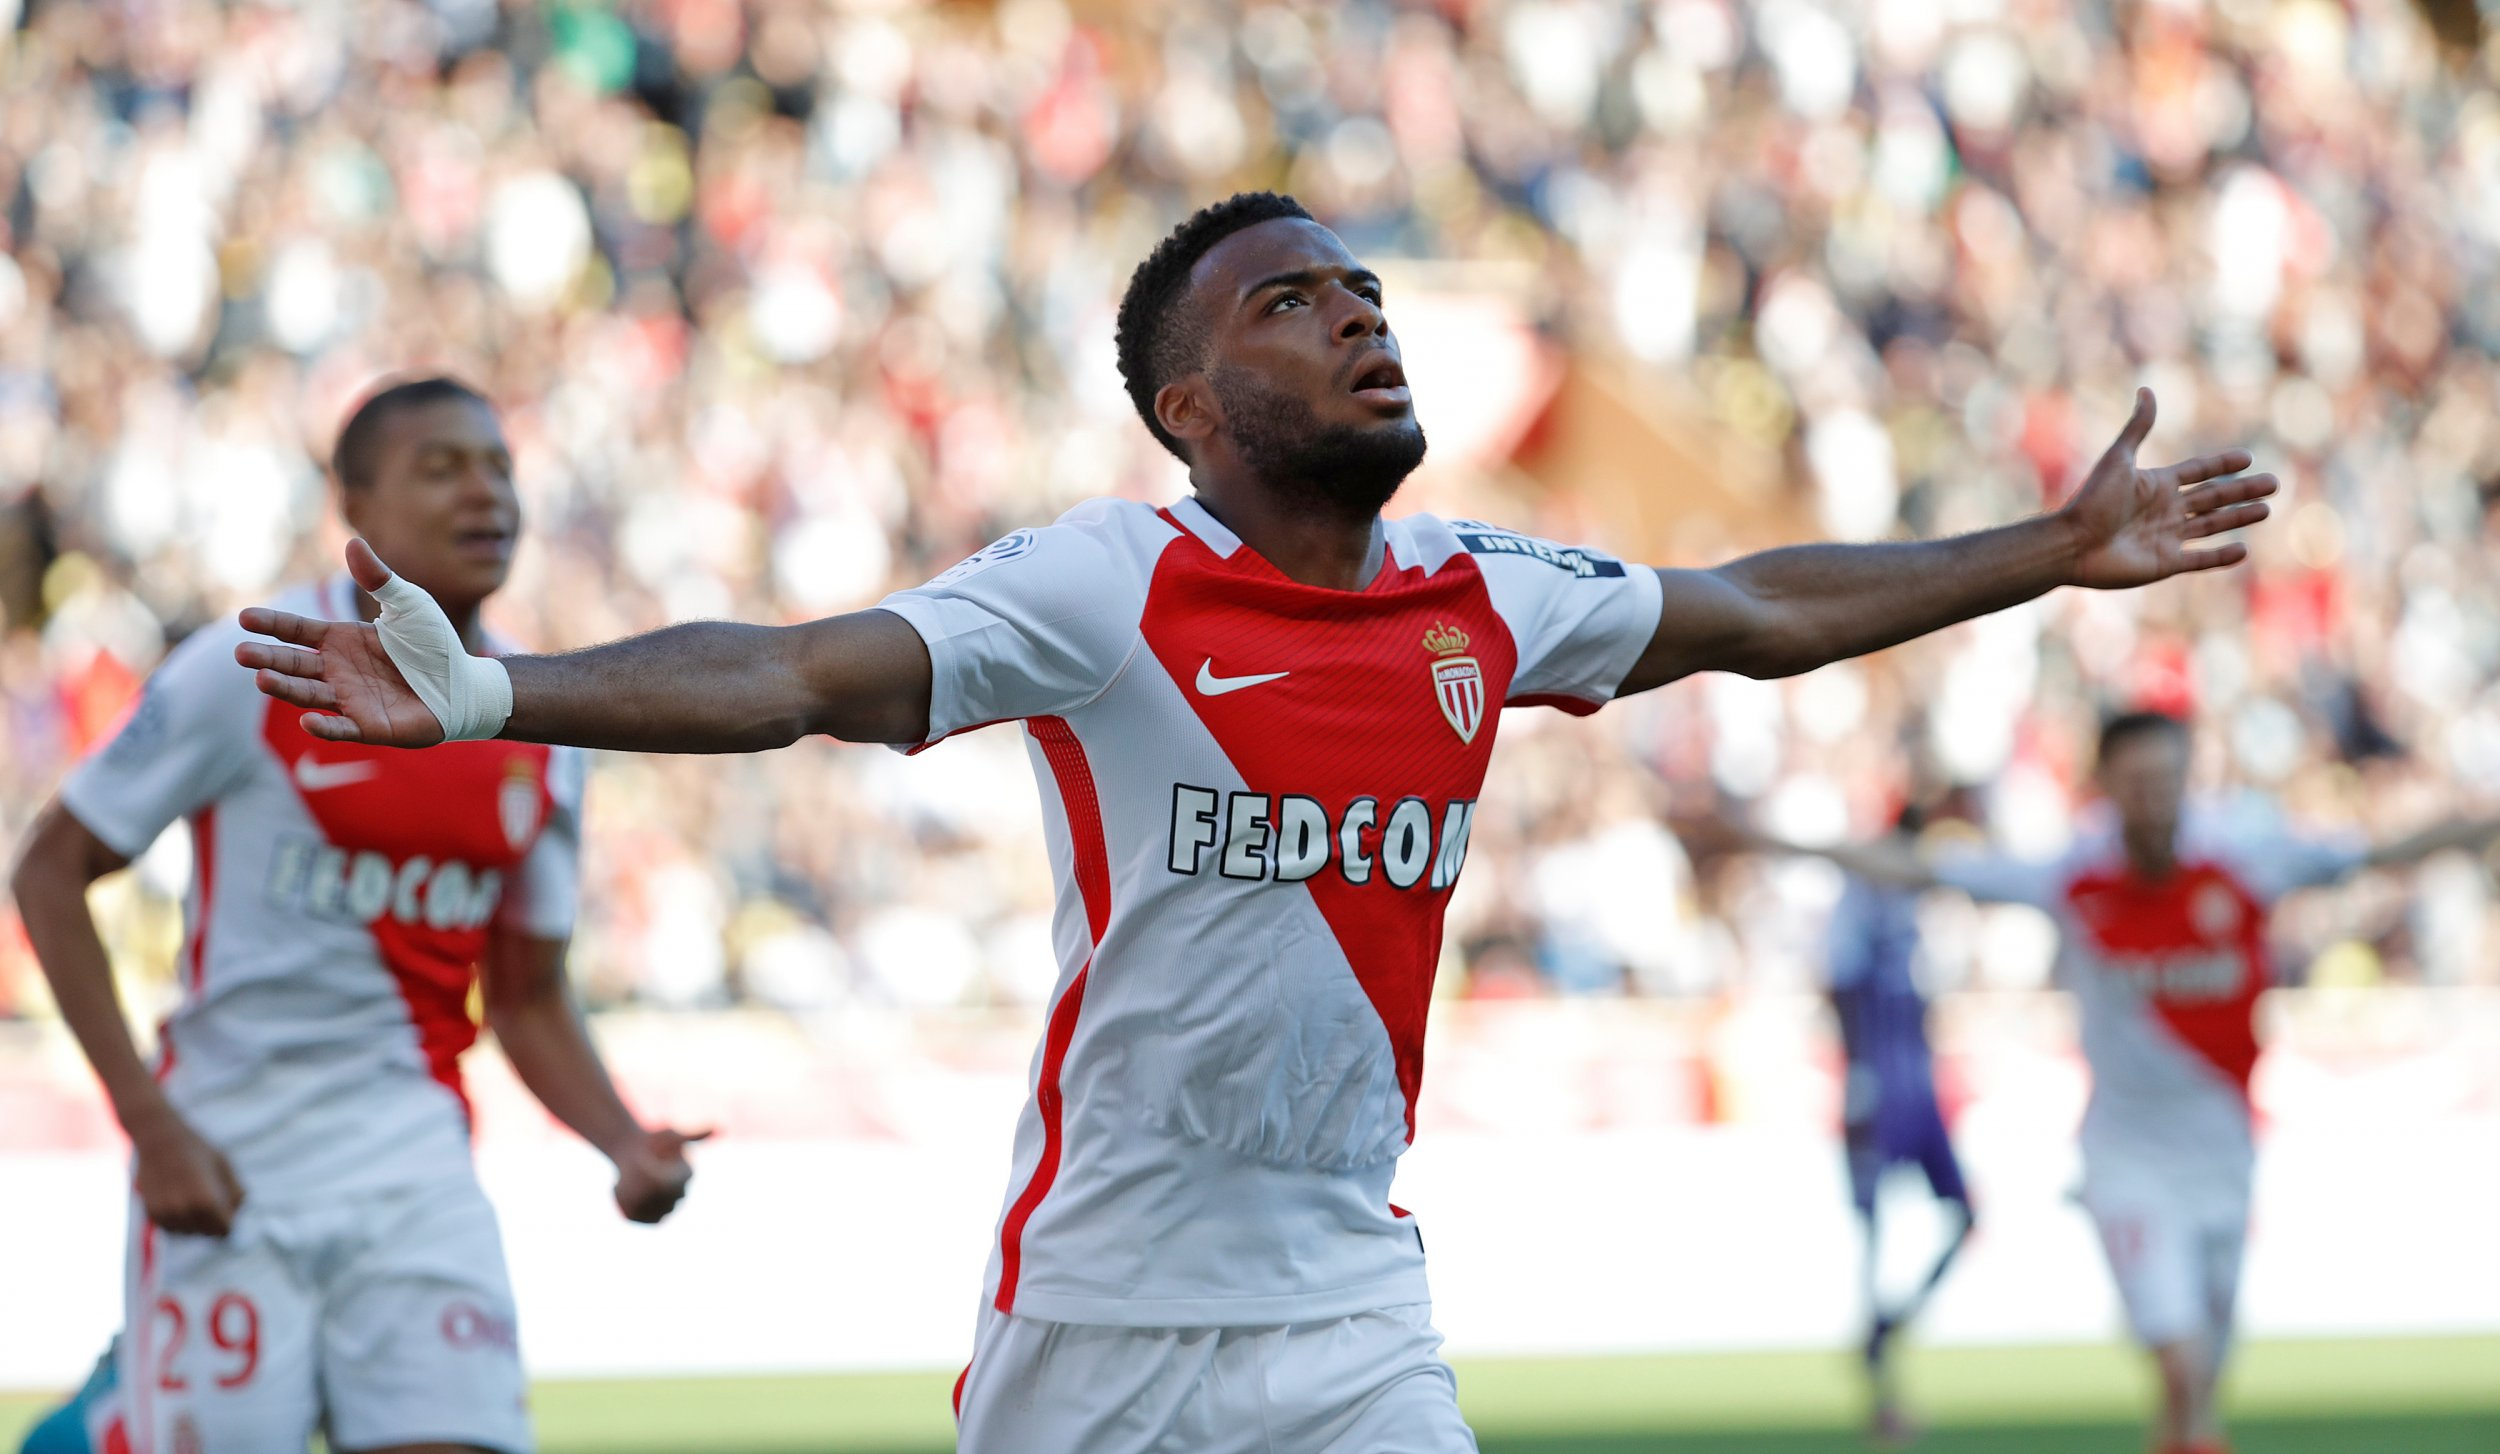 Monaco's Thomas Lemar at Stade Louis II, Monaco, April 29.